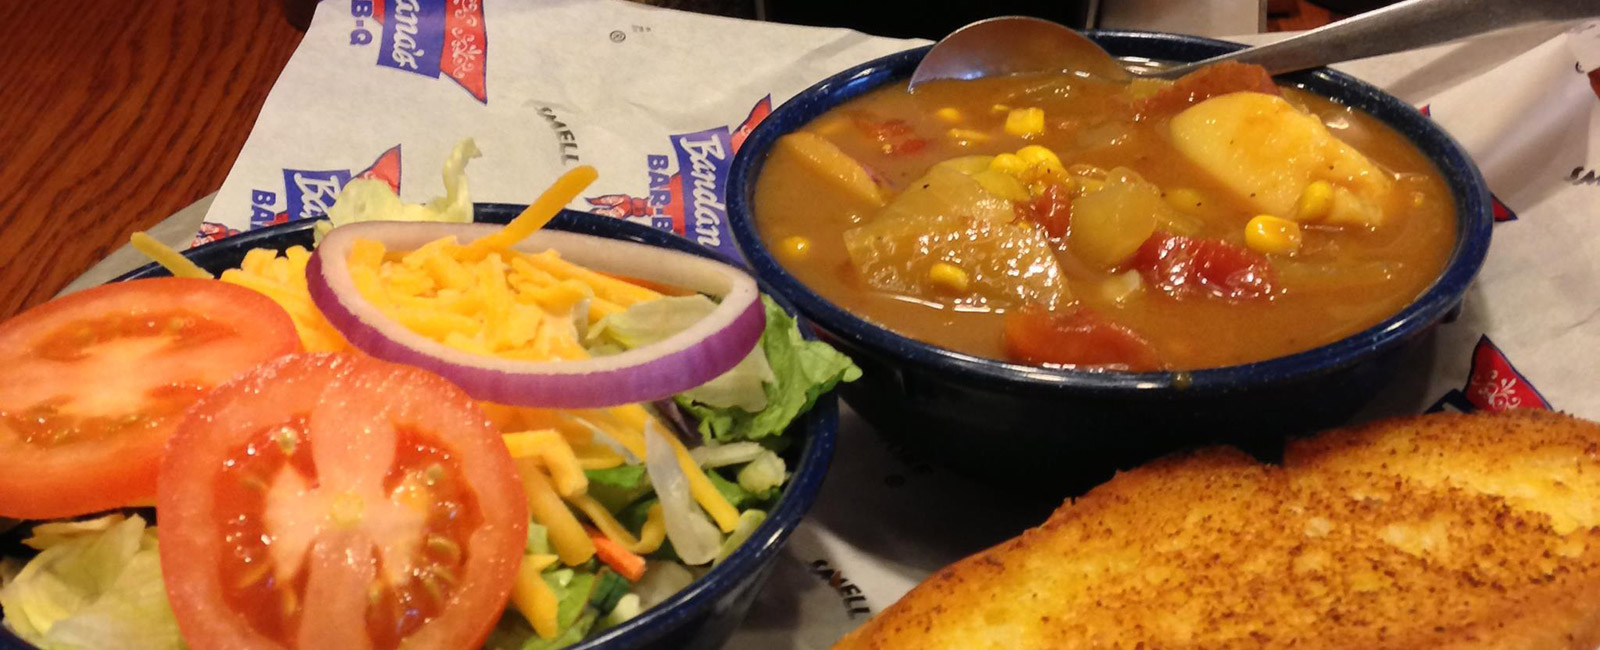 Brunswick Stew with Salad !